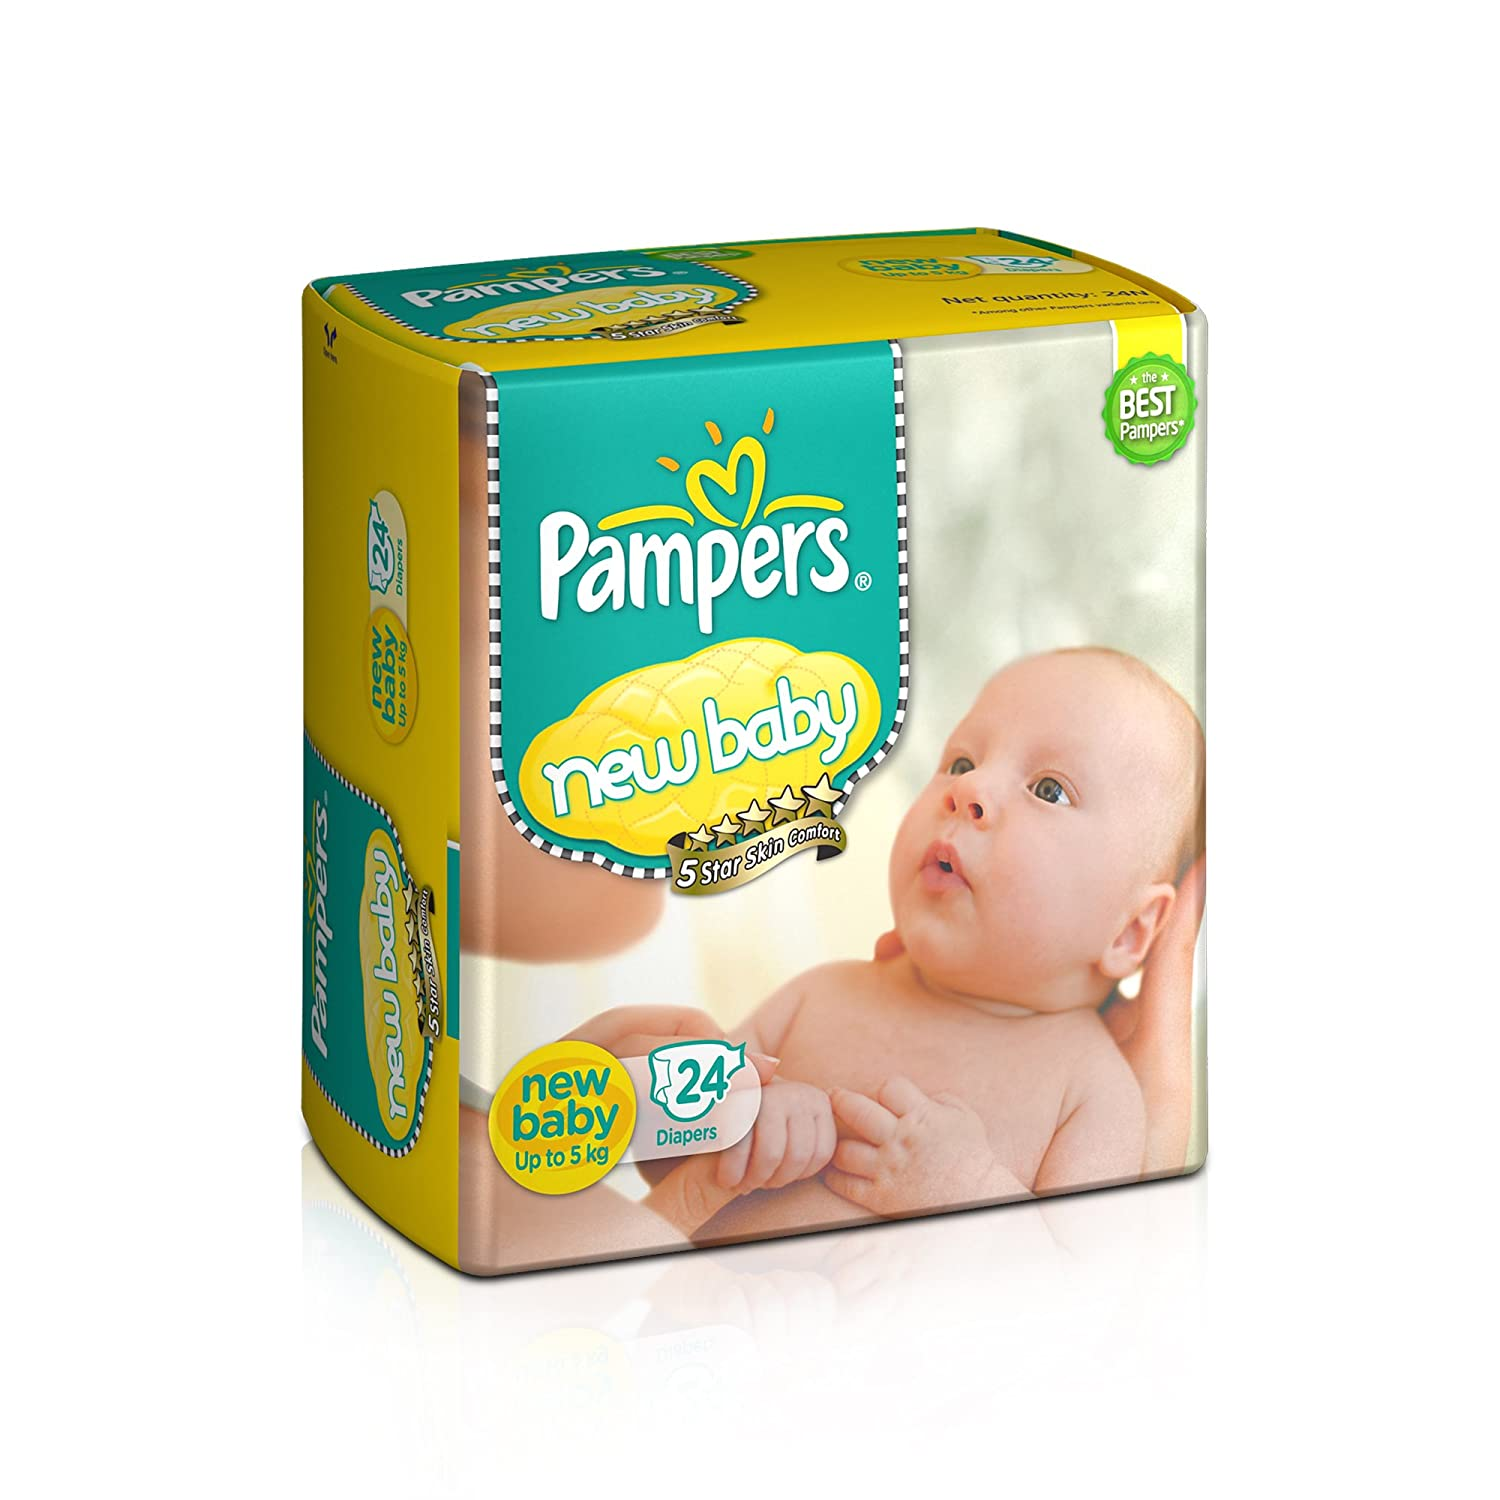 Pampers new baby diapers 24 count amazon in amazon pantry